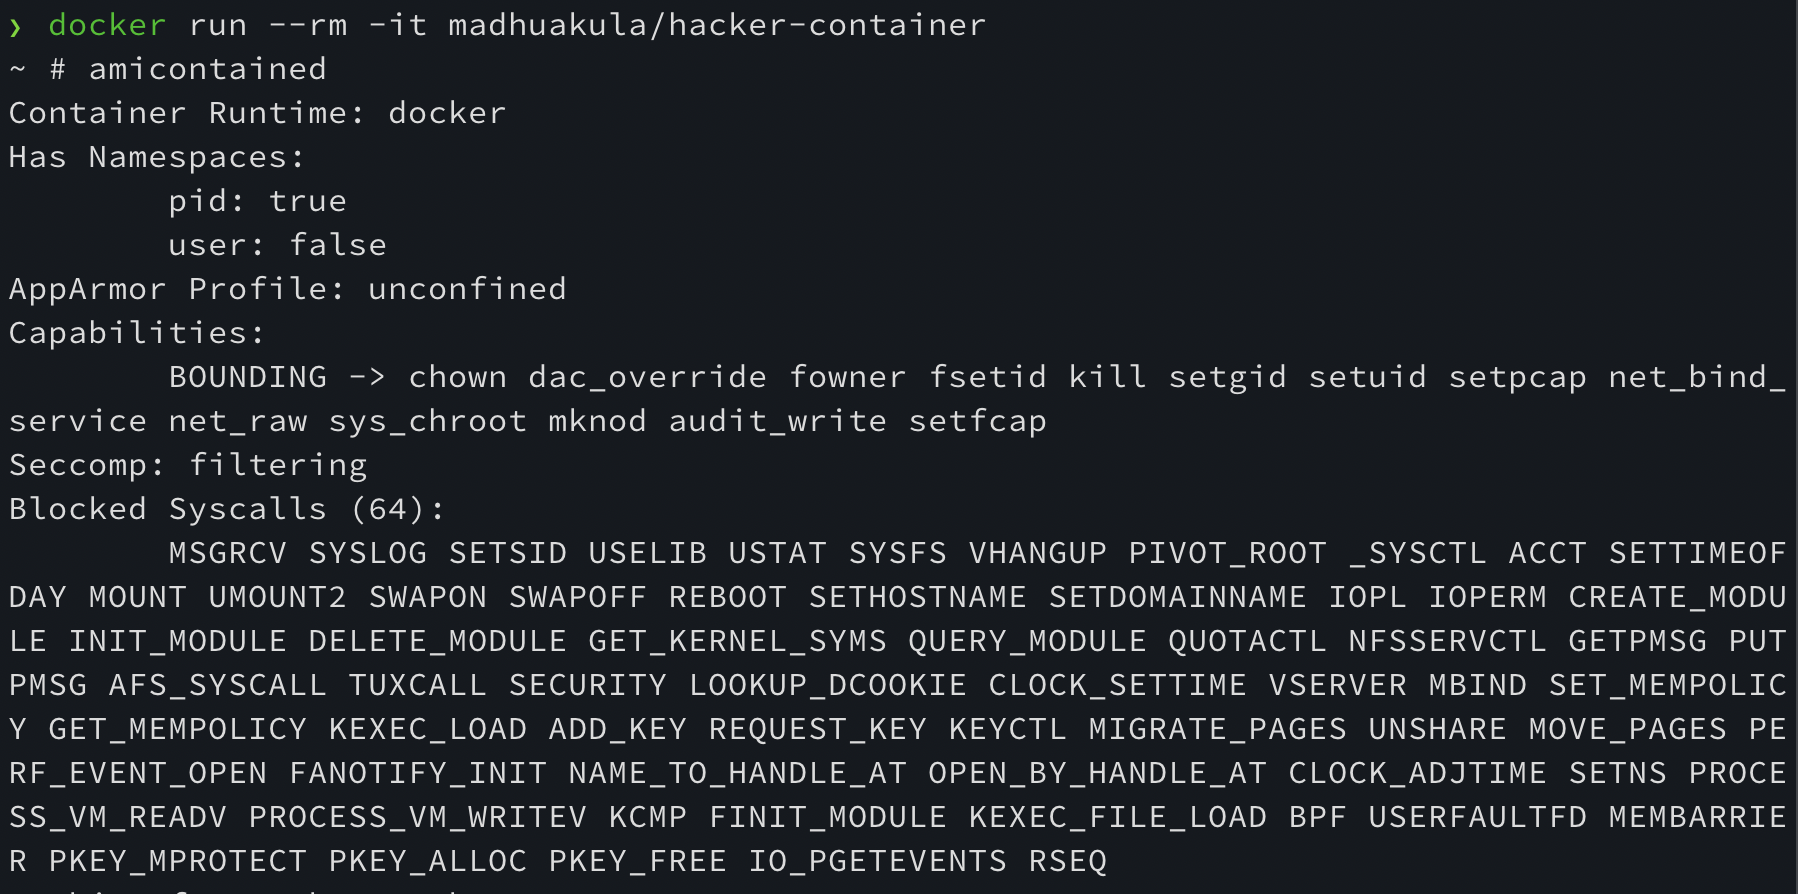 Hacker Container in Action